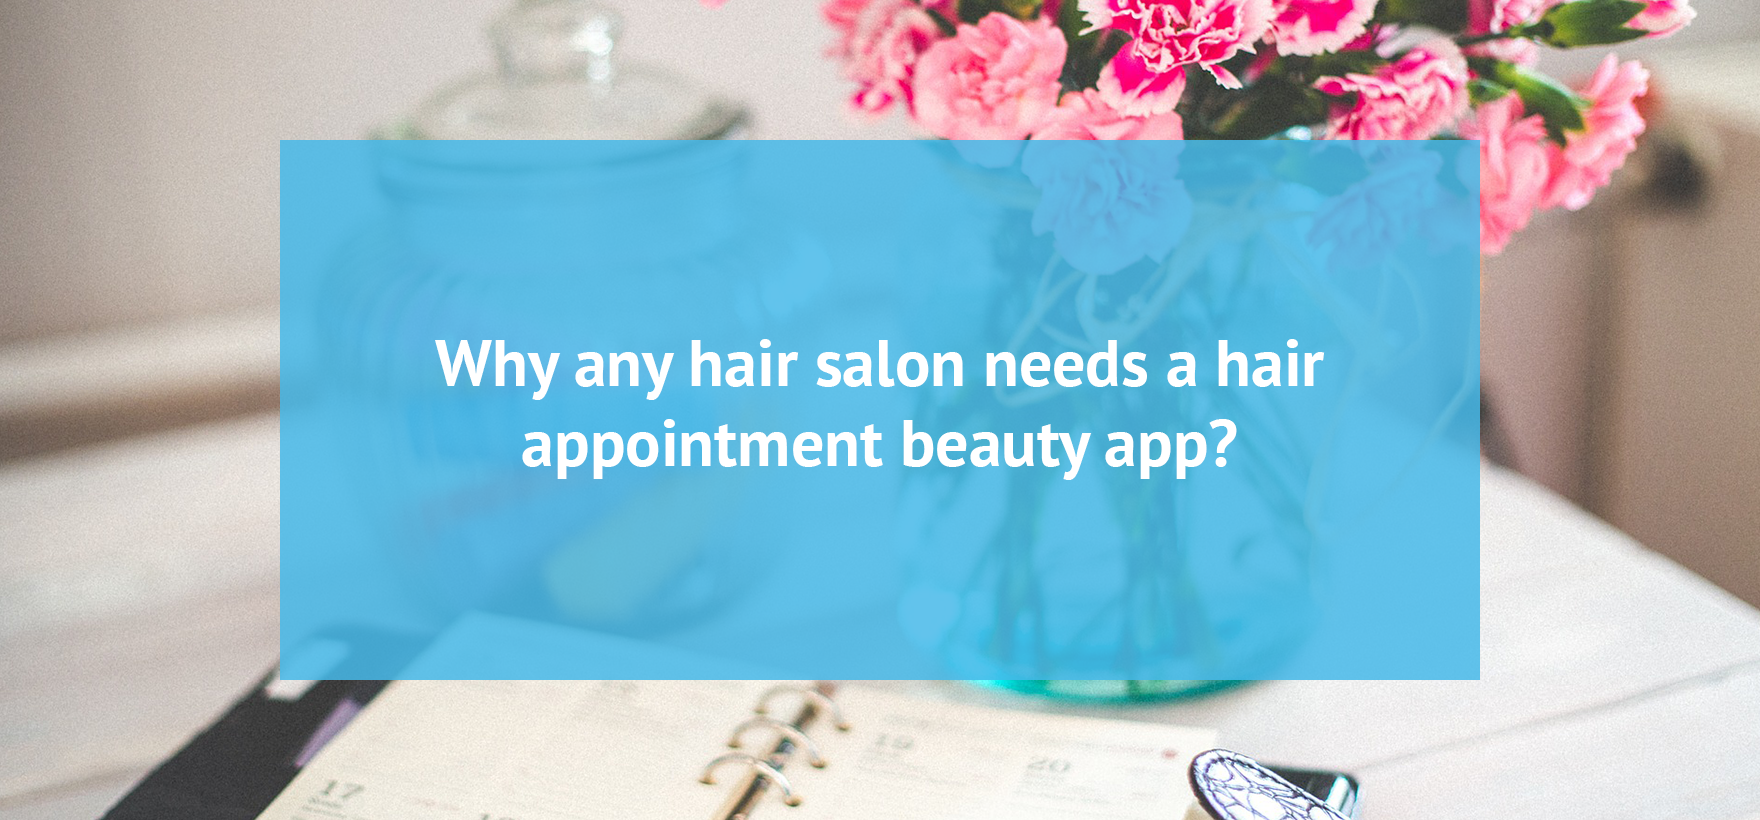 Why any hair salon needs a hair appointment beauty app?